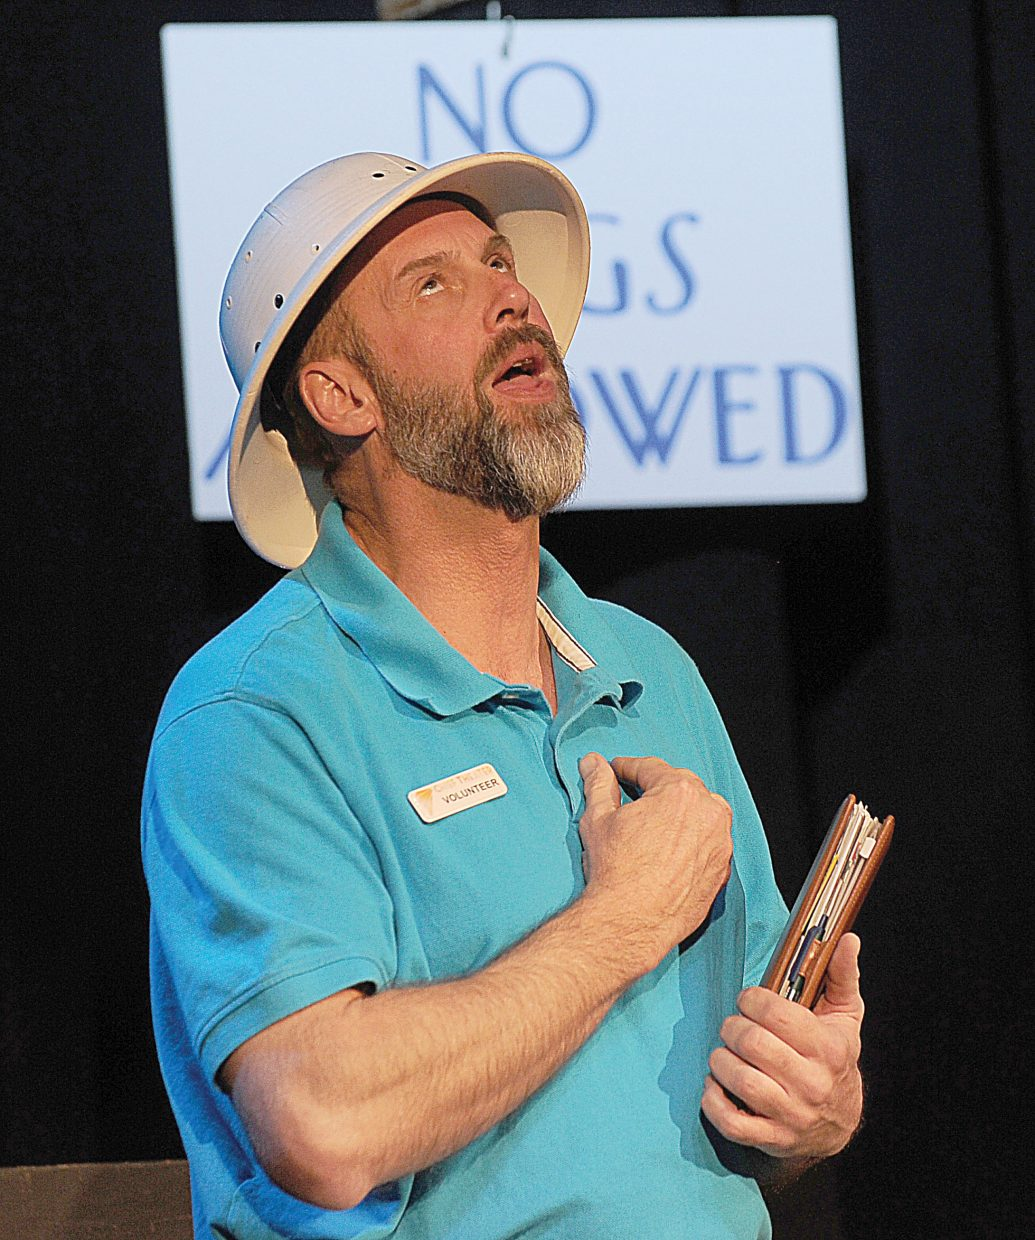 Chad McGown plays the part of a resort employee while rehearsing a scene from Shel Shocked, which will be presented by the Chief Players starting at 8 p.m. this Friday.